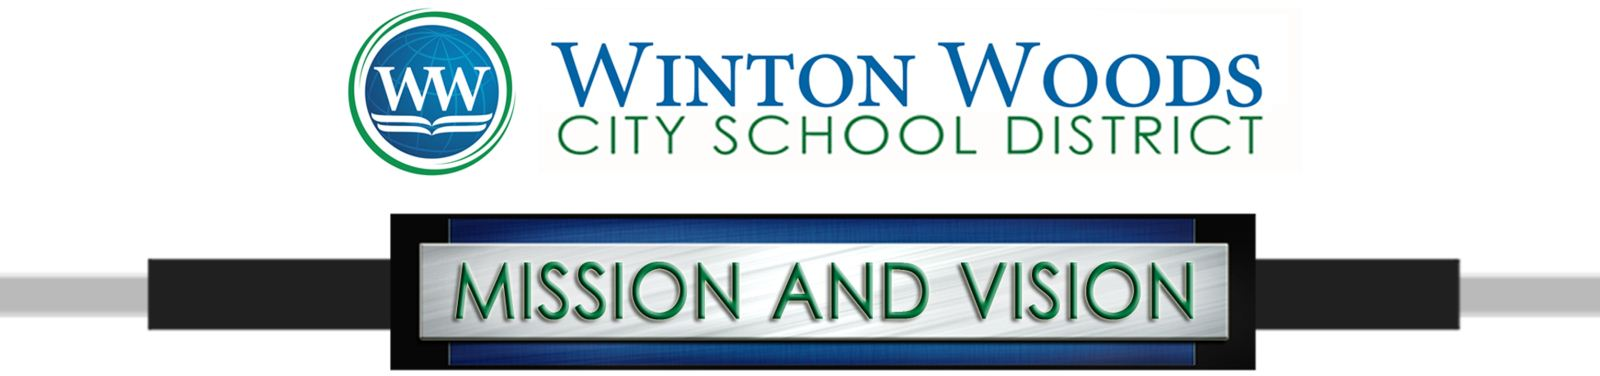 WWCSD - Mission and Vision